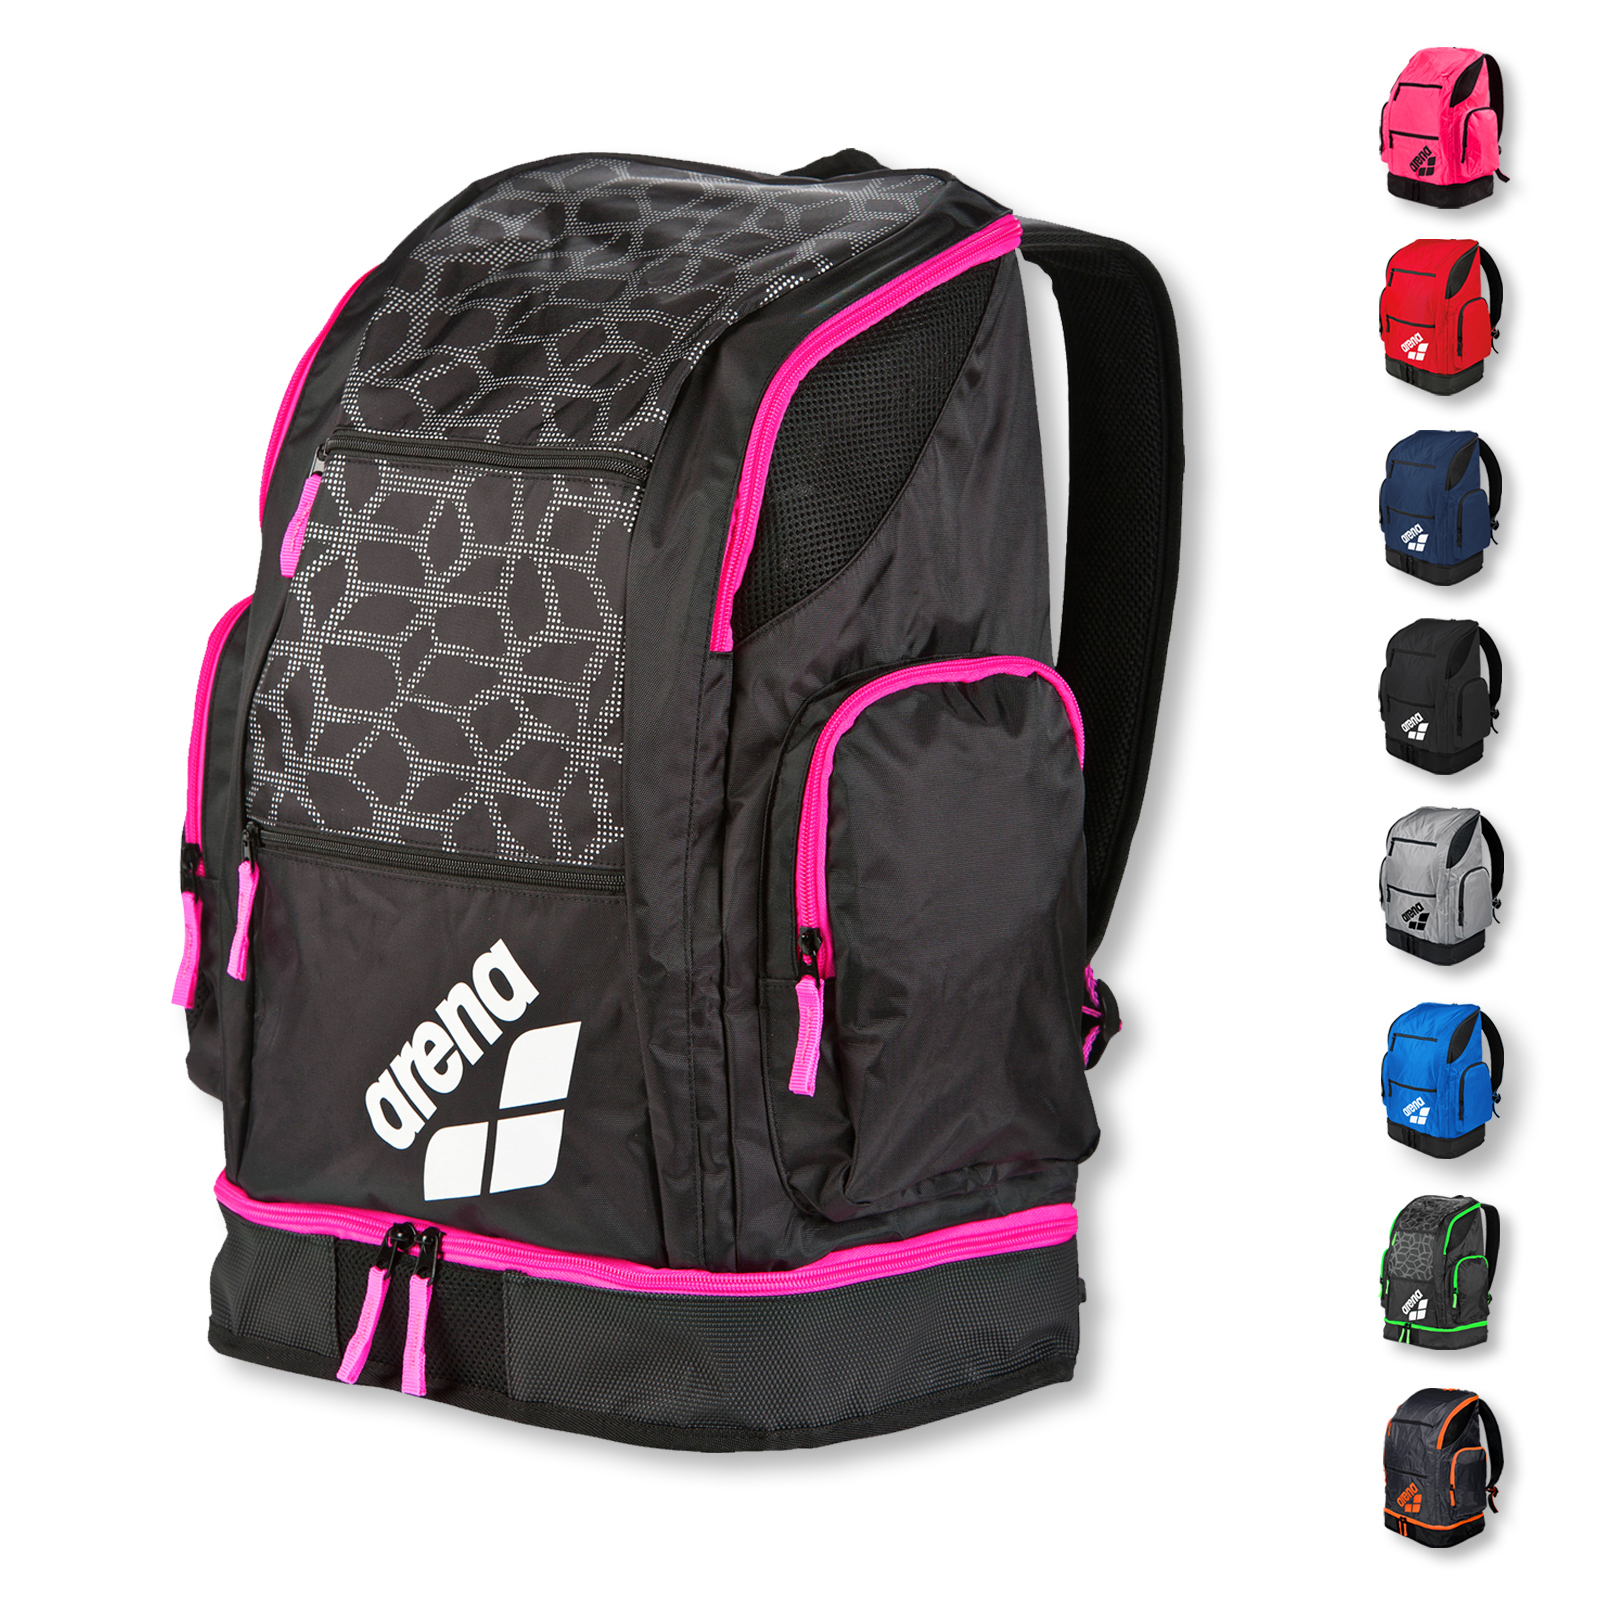 Arena Spiky 2 large Backpack Rucksack 1E004 in red team vergrößern